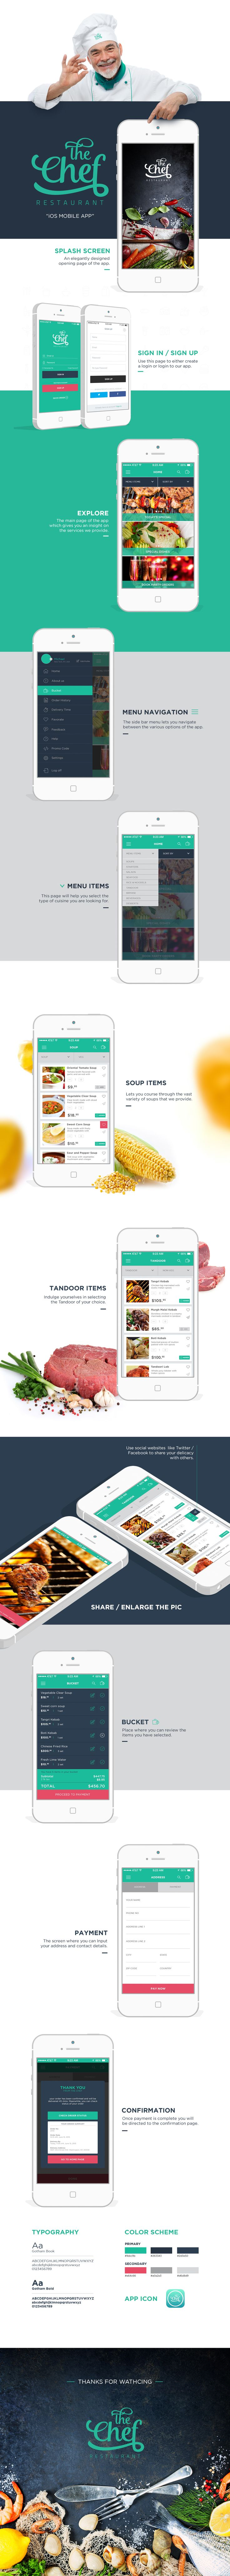 The Chef Restaurant iOS App on Behance #AFSolution #KaosCommunication